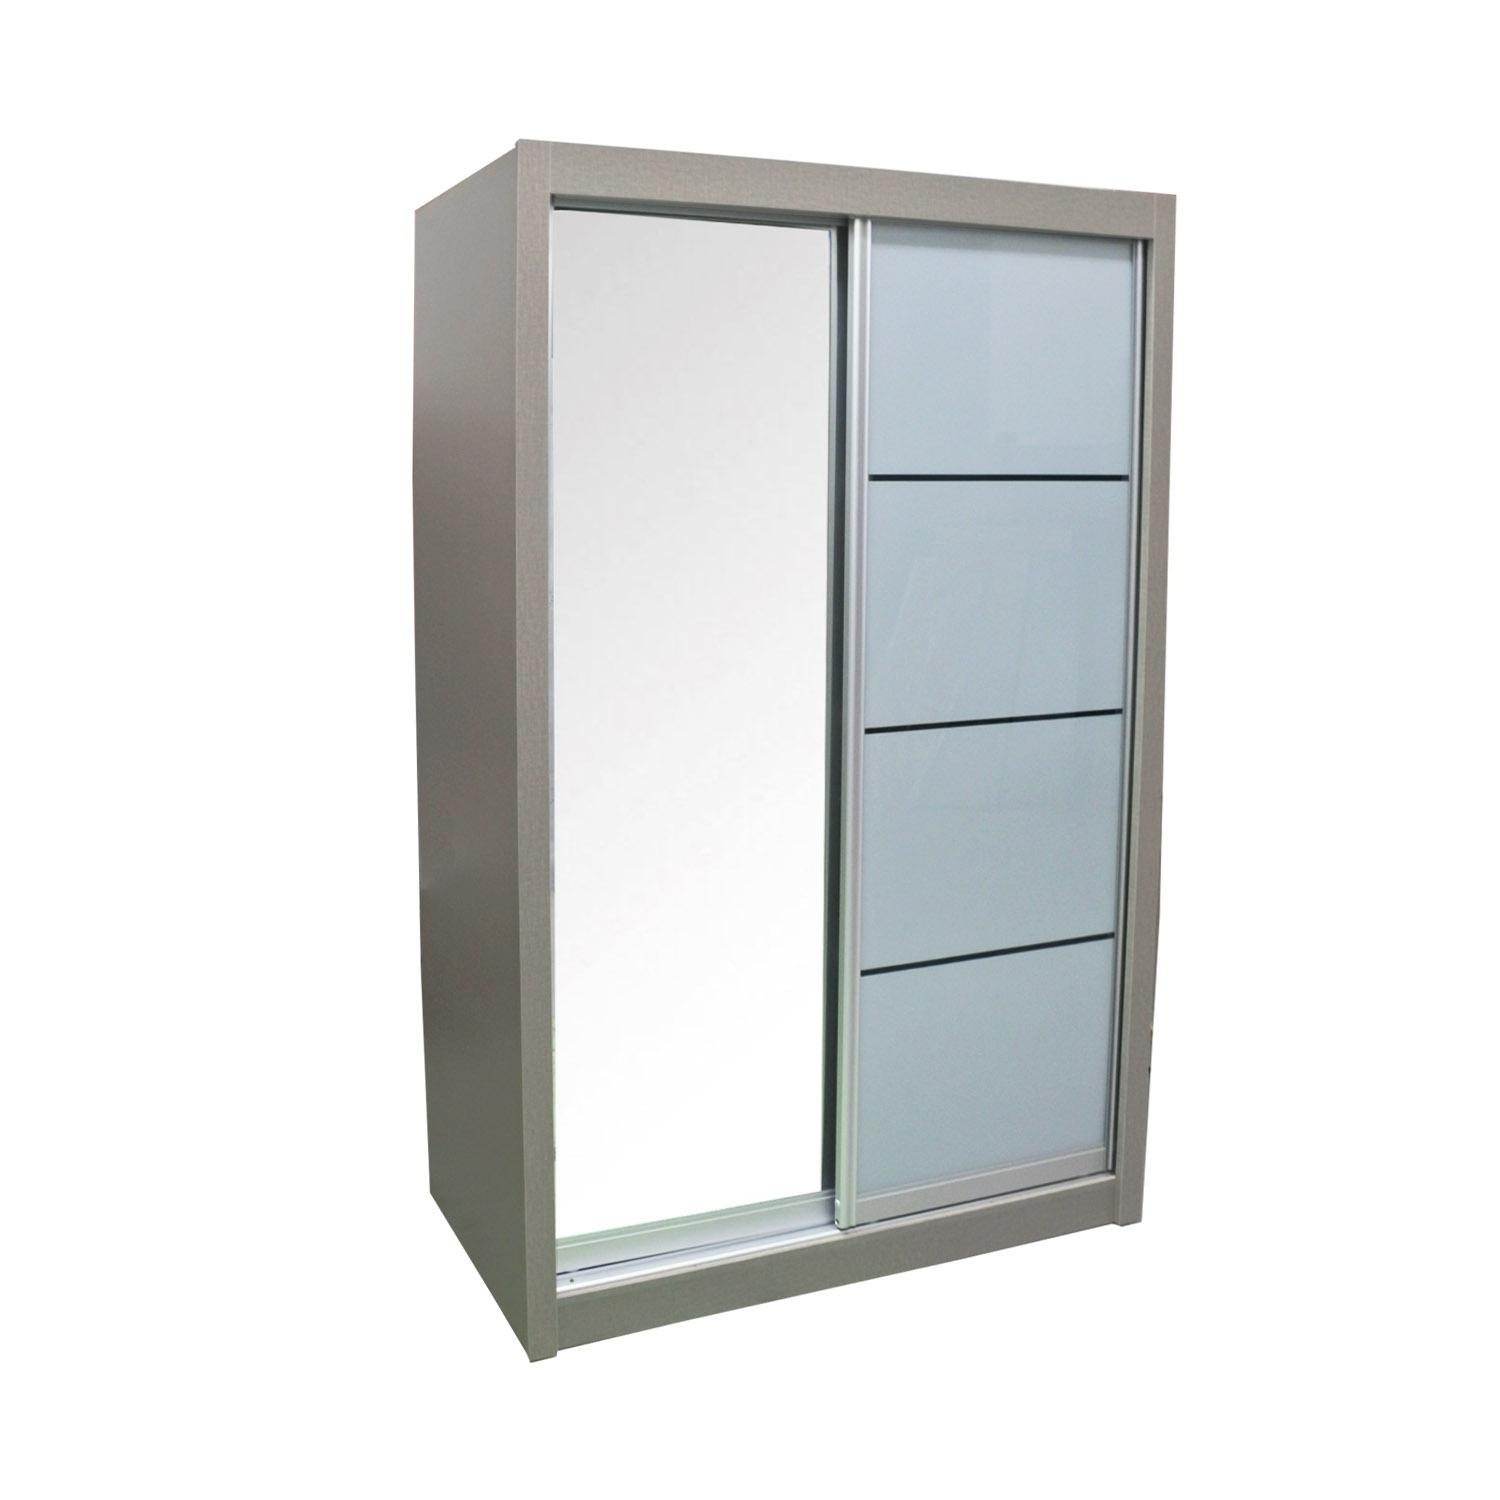 LIVING MALL_Vitta Sliding Wardrobe_FREE DELIVERY